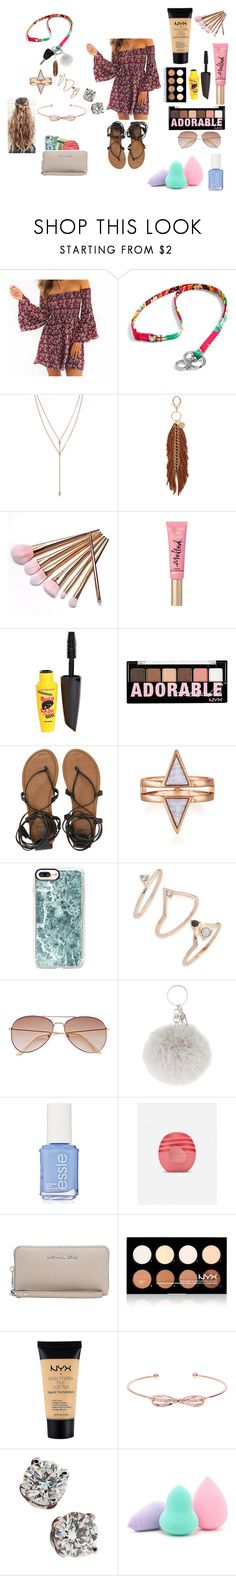 """Untitled #46"" by ajgswim on Polyvore featuring Vera Bradley, Vince Camuto, Rebecca Minkoff, Wrangler, L.A. Colors, NYX, Billabong, Casetify, Topshop and H&M"